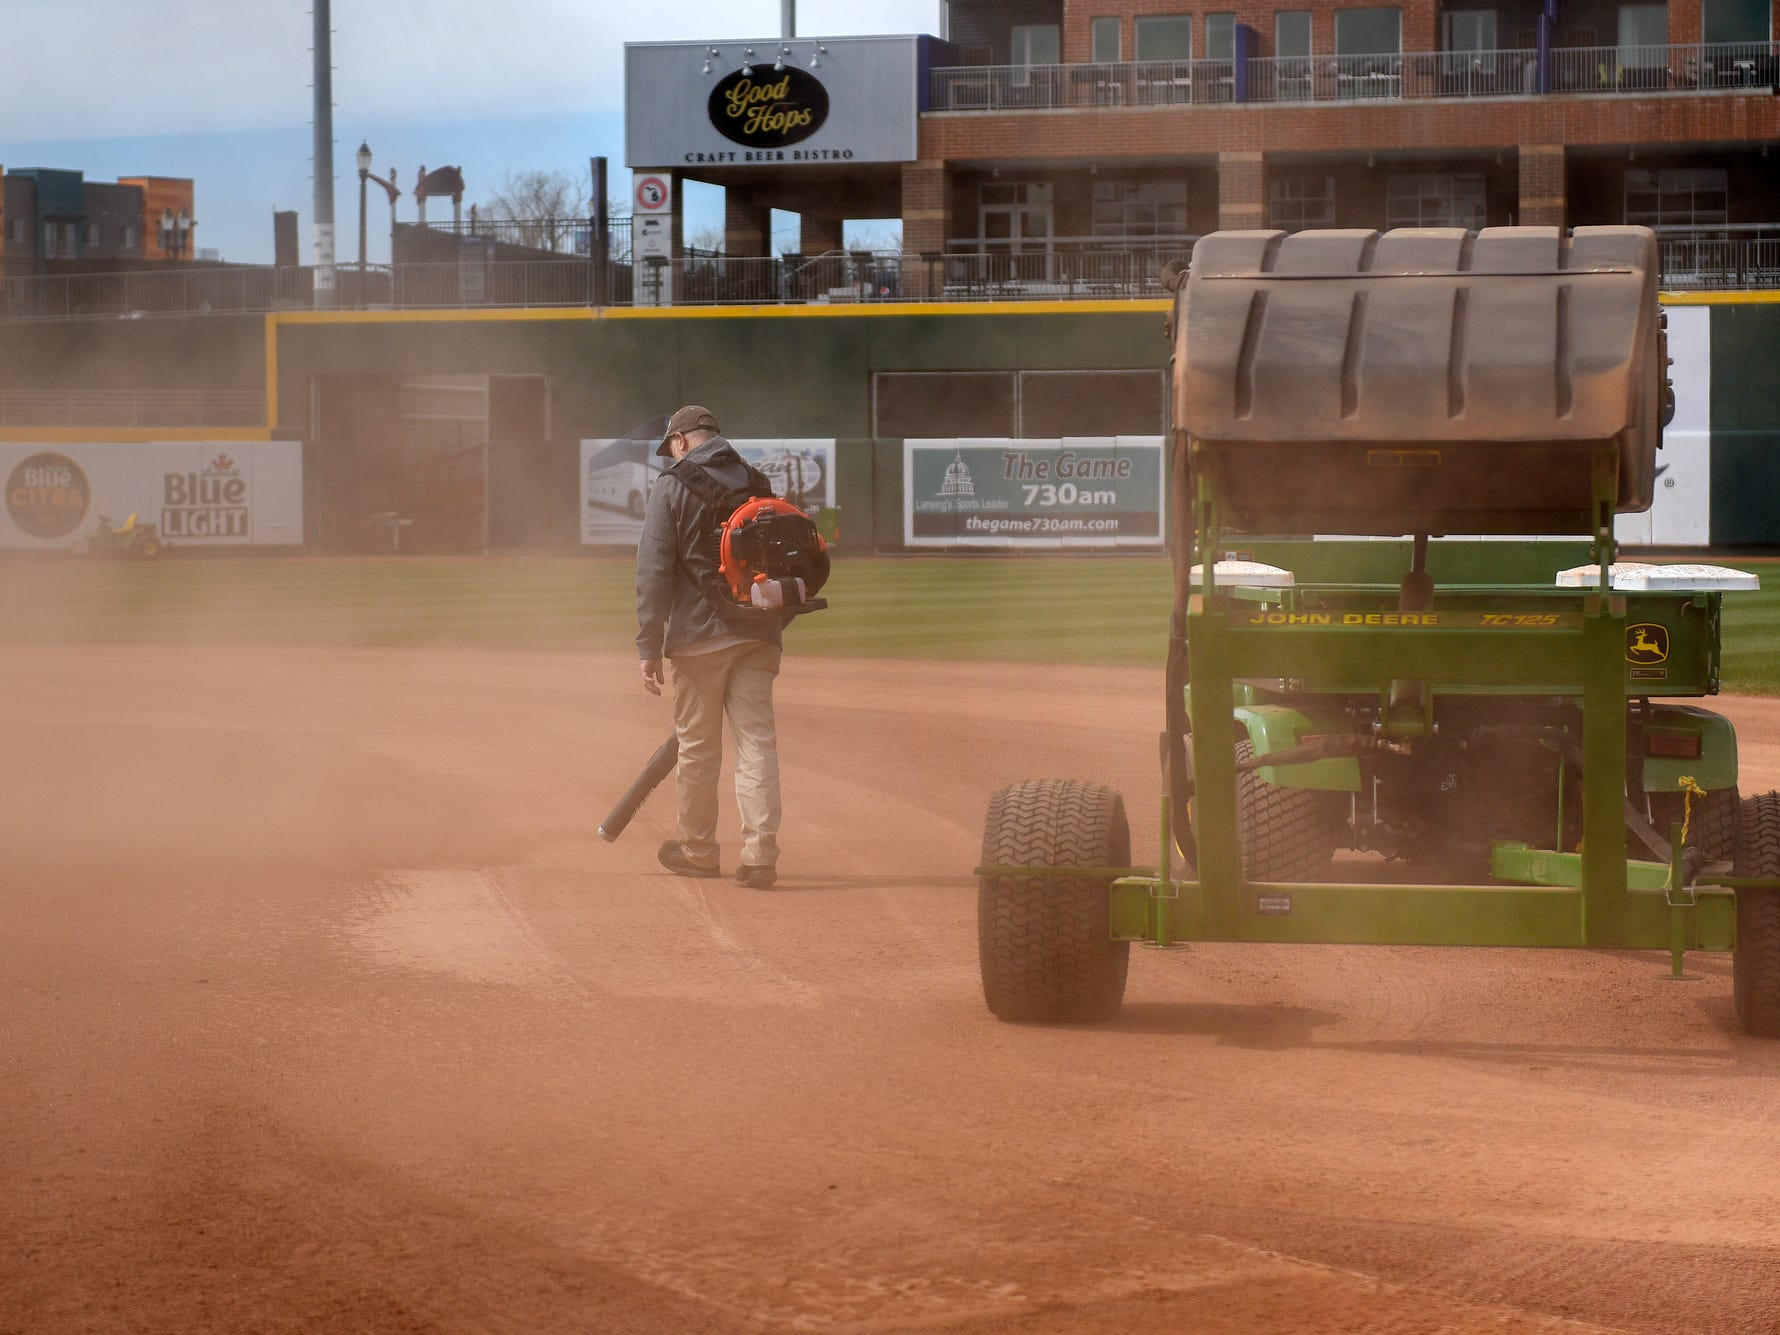 A grounds crew member uses a blower on the infield dirt as the Lugnuts baseball field is transformed into a soccer pitch on Wednesday, April 24, 2019, before an upcoming Lansing Ignite soccer match at Cooley Law School Stadium in Lansing.